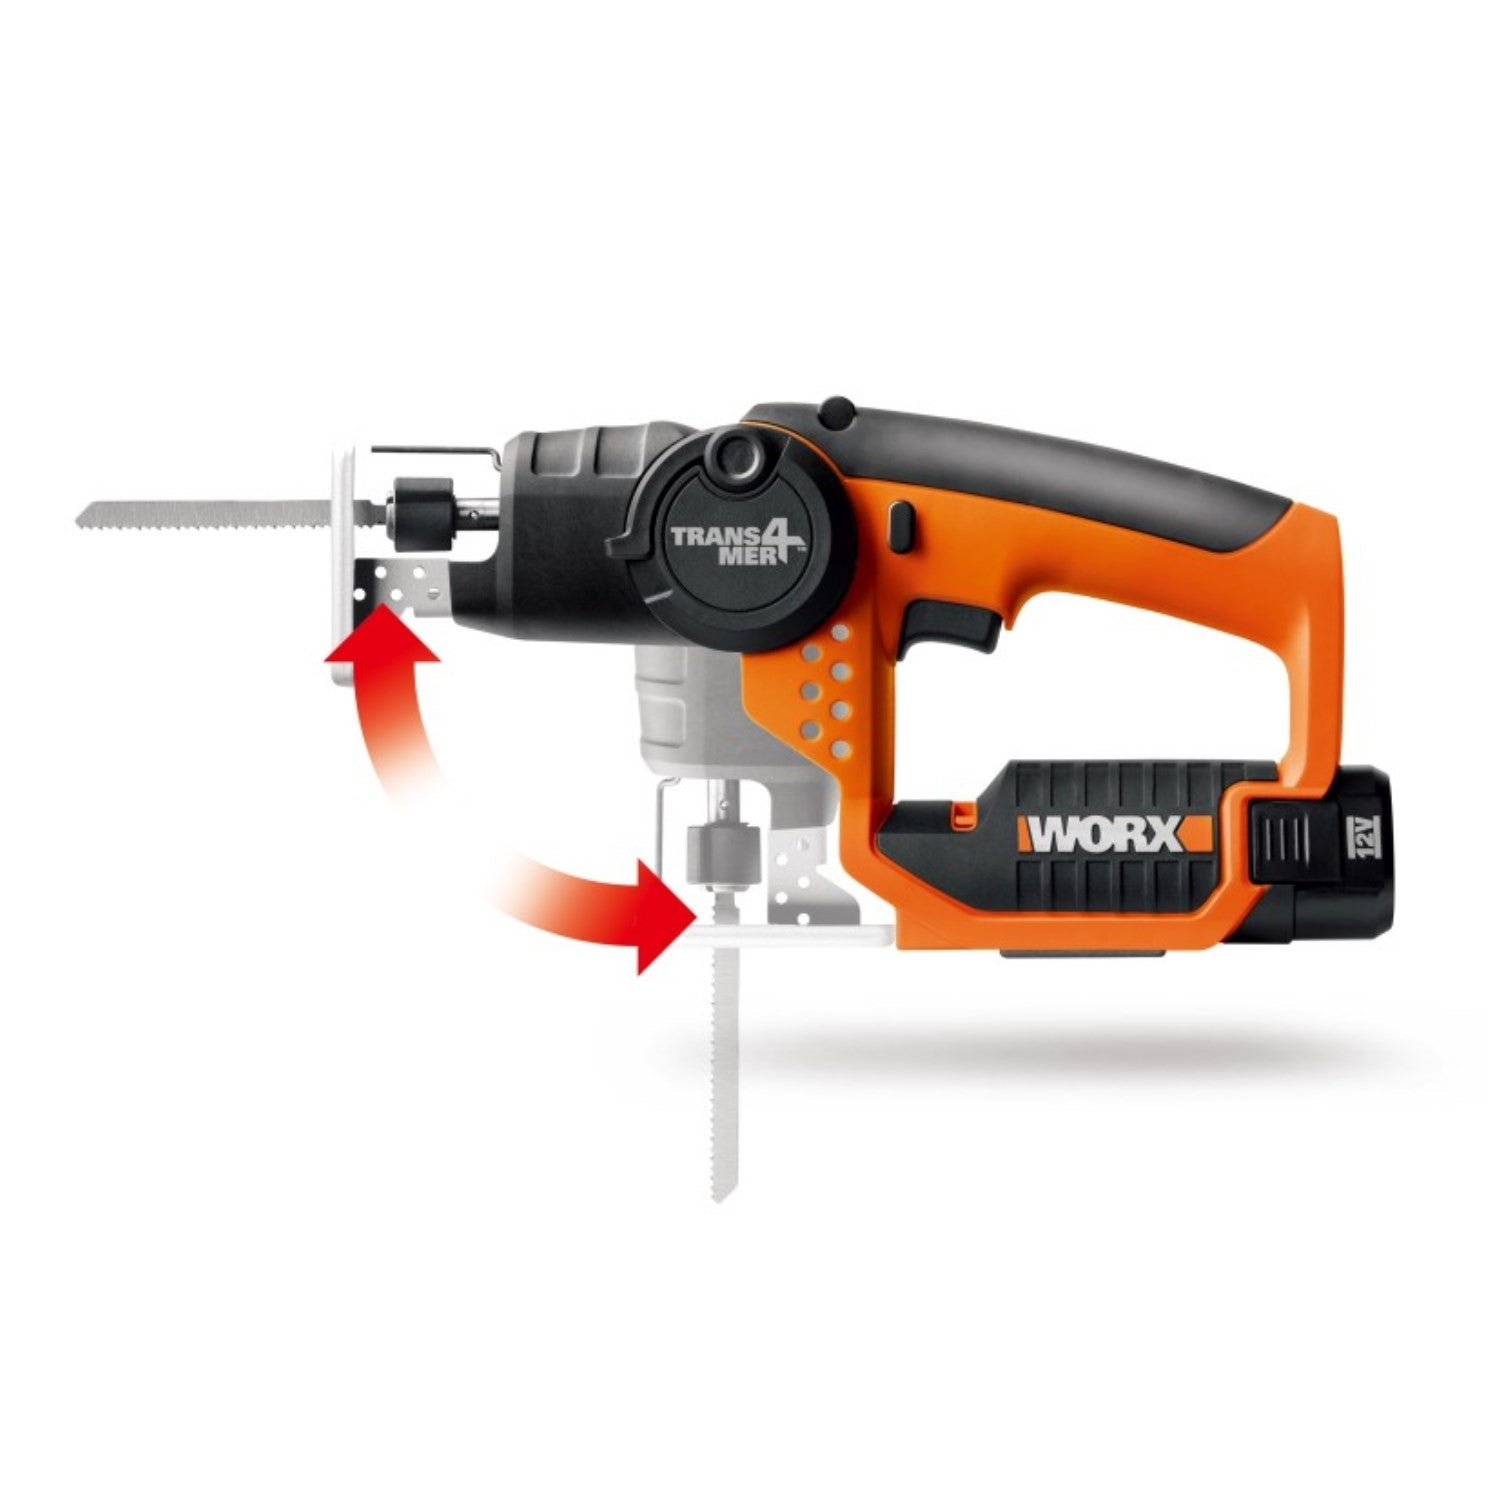 Worx 12V Trans4mer Reciprocating JigSaw